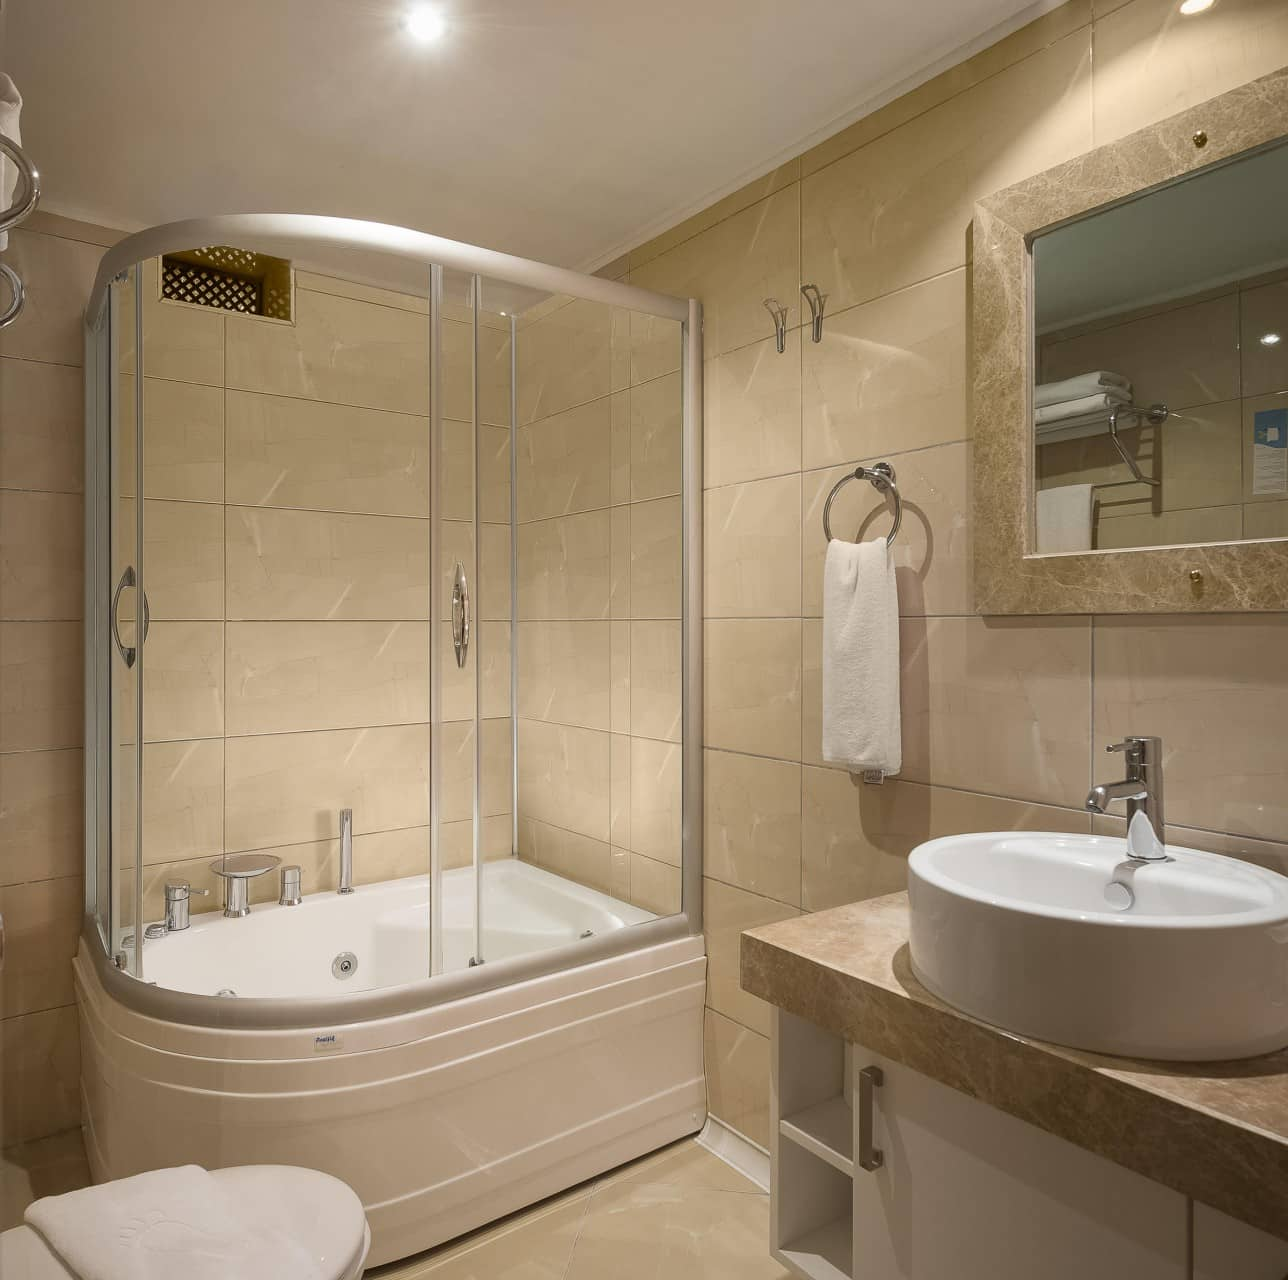 Best Architecture Photographer Thailand | Dogan Hotel Antalya Kaleici Suite Bathroom